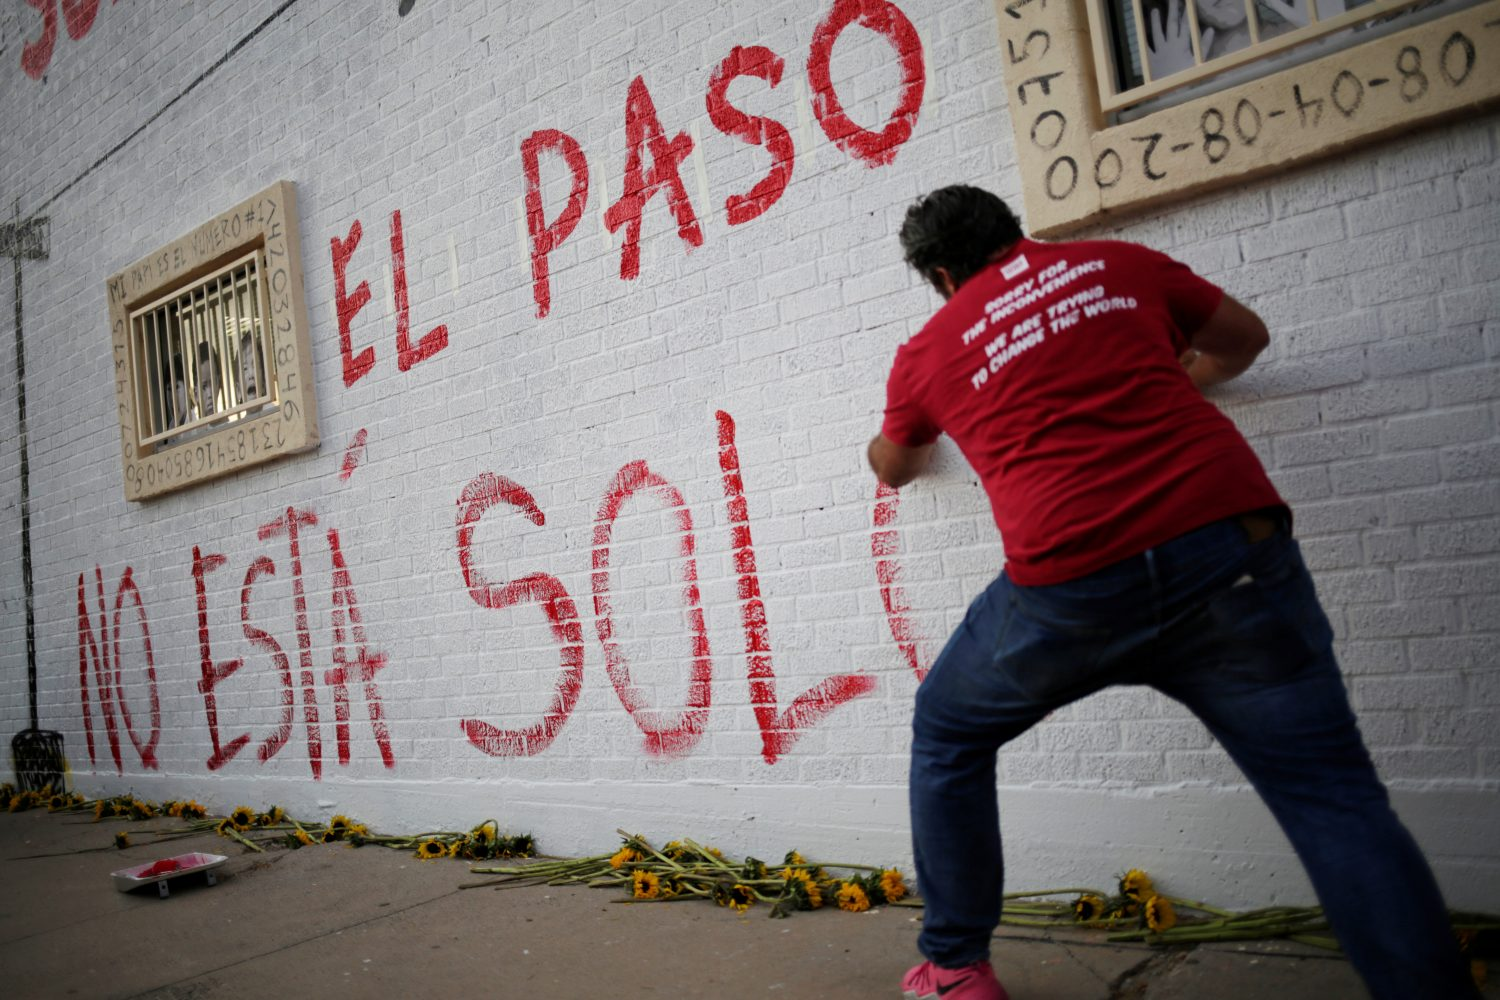 "A man takes part in a rally against hate a day after a mass shooting at a Walmart store, in El Paso, Texas, U.S. August 4, 2019. Graffiti reads ""El Paso Is Not Alone"" REUTERS/Jose Luis Gonzalez"